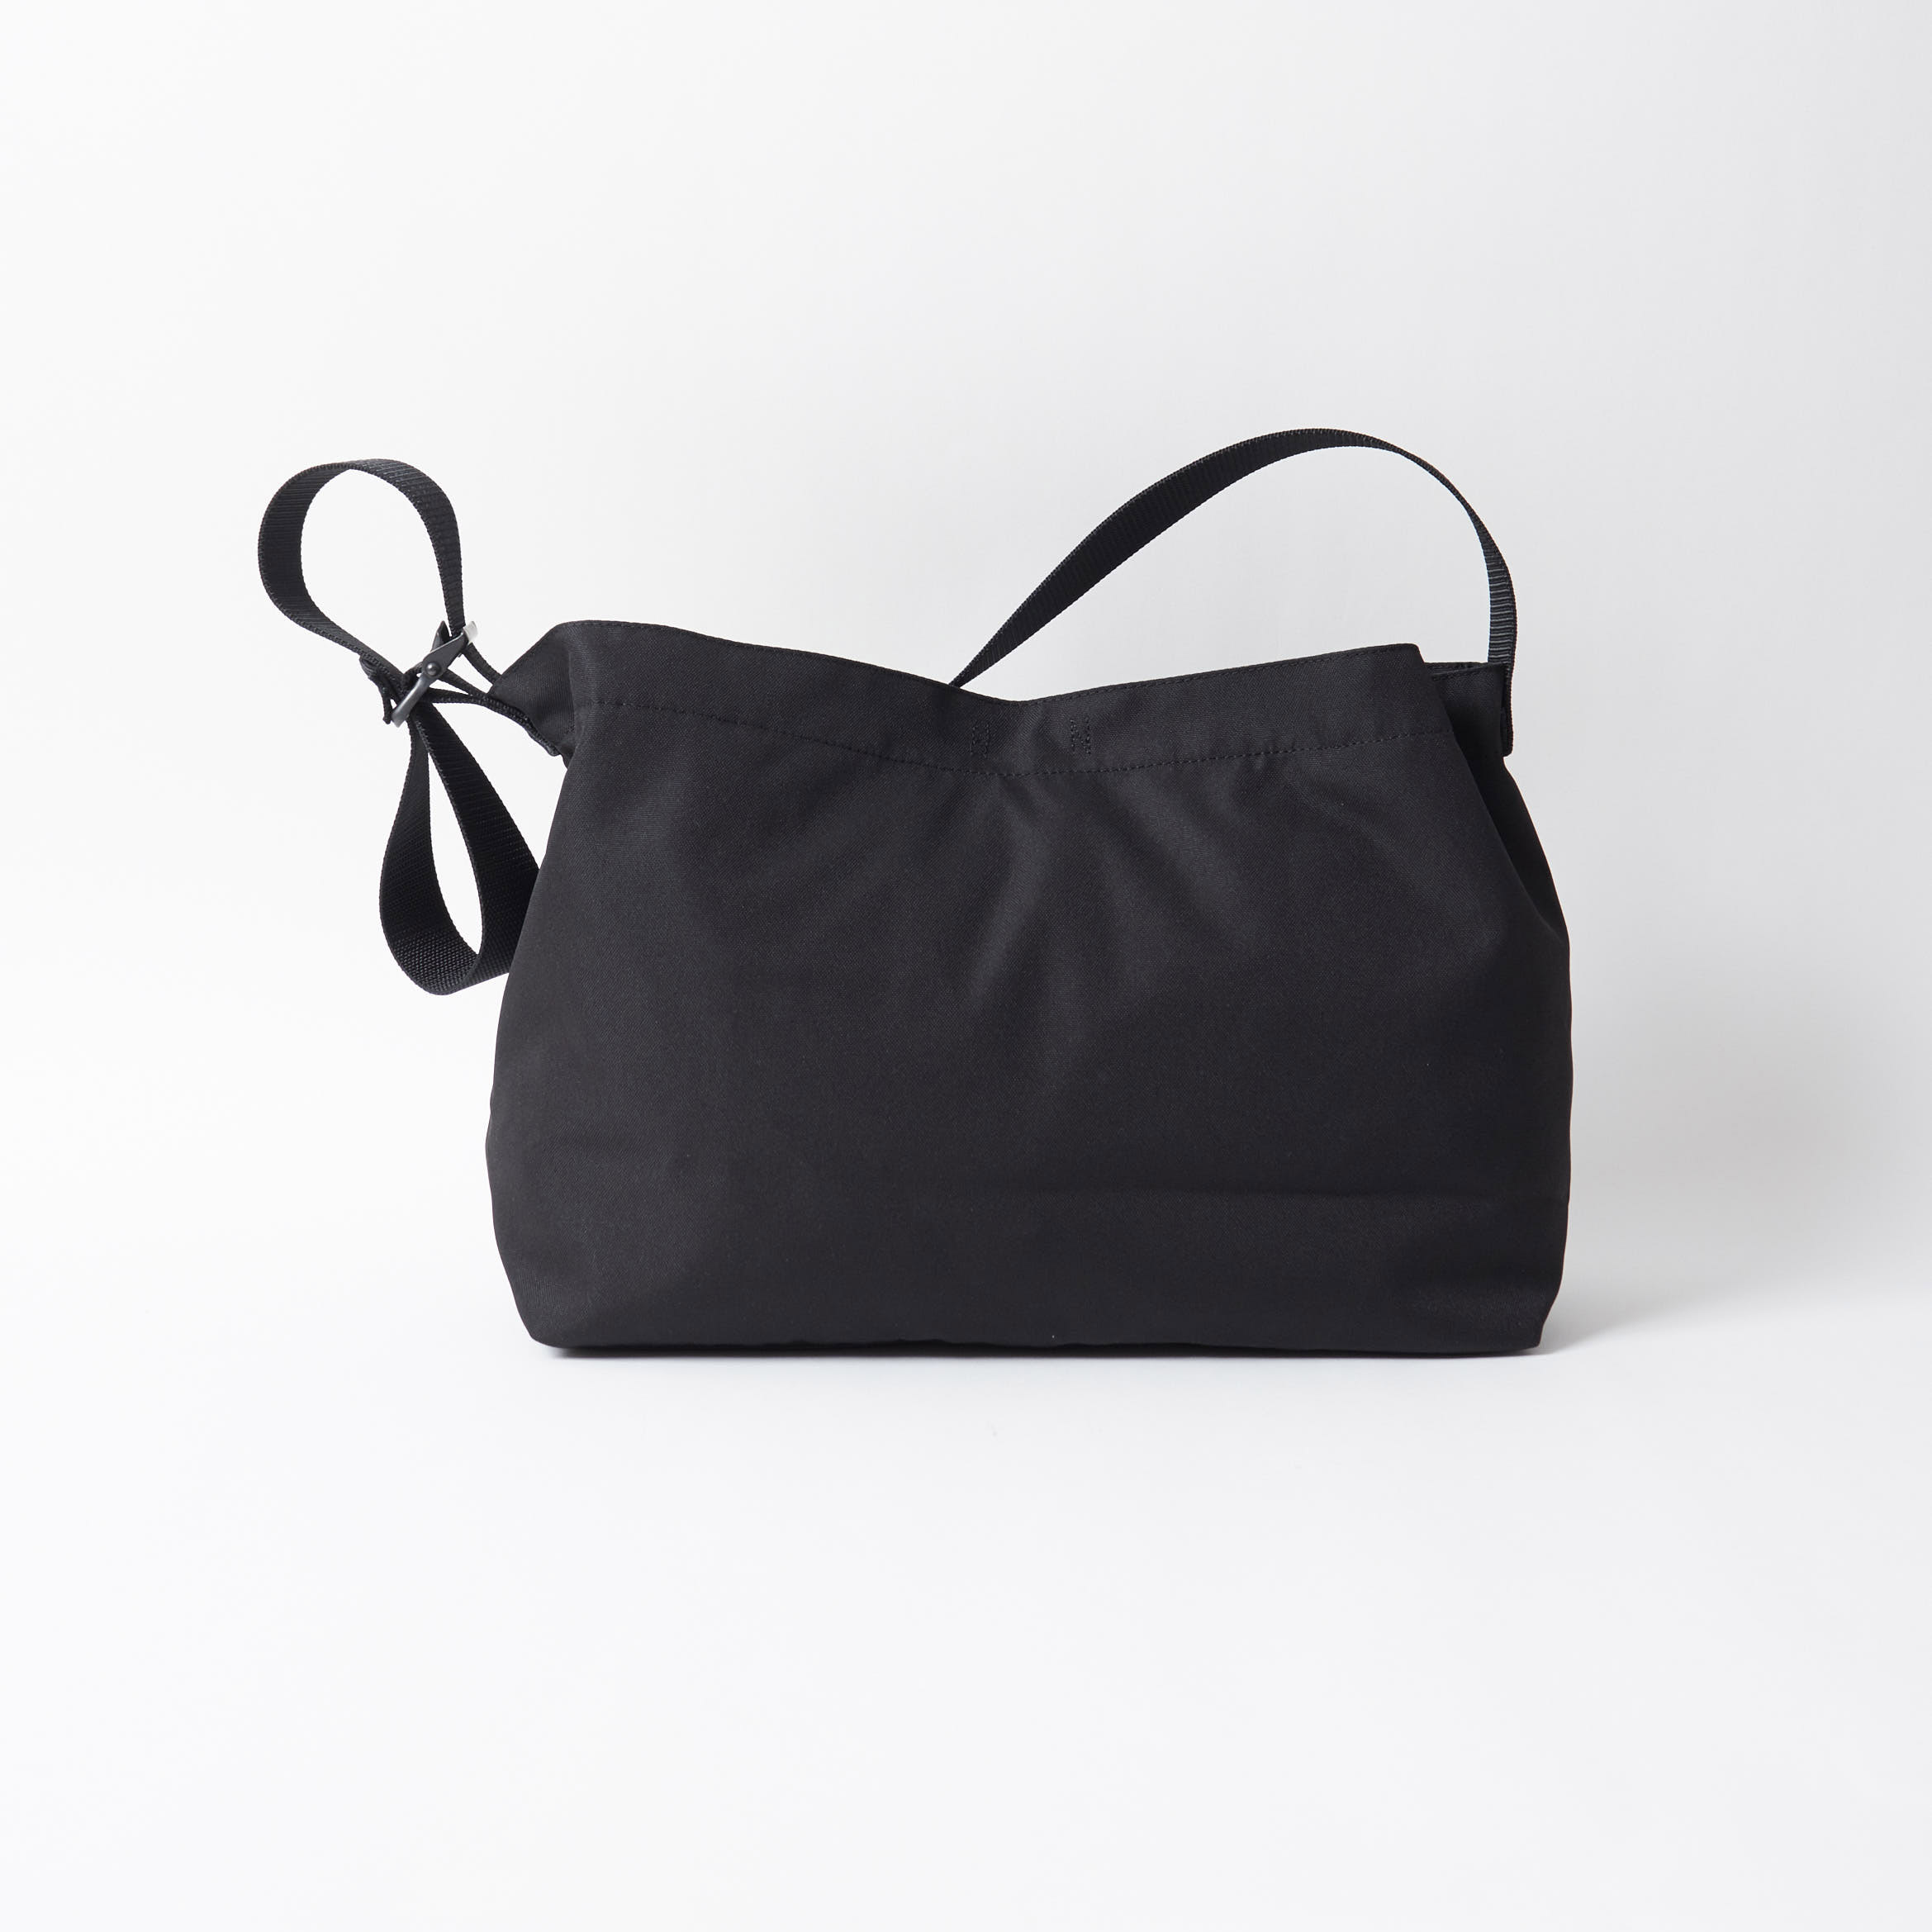 NO FLAP SLING BLK 2